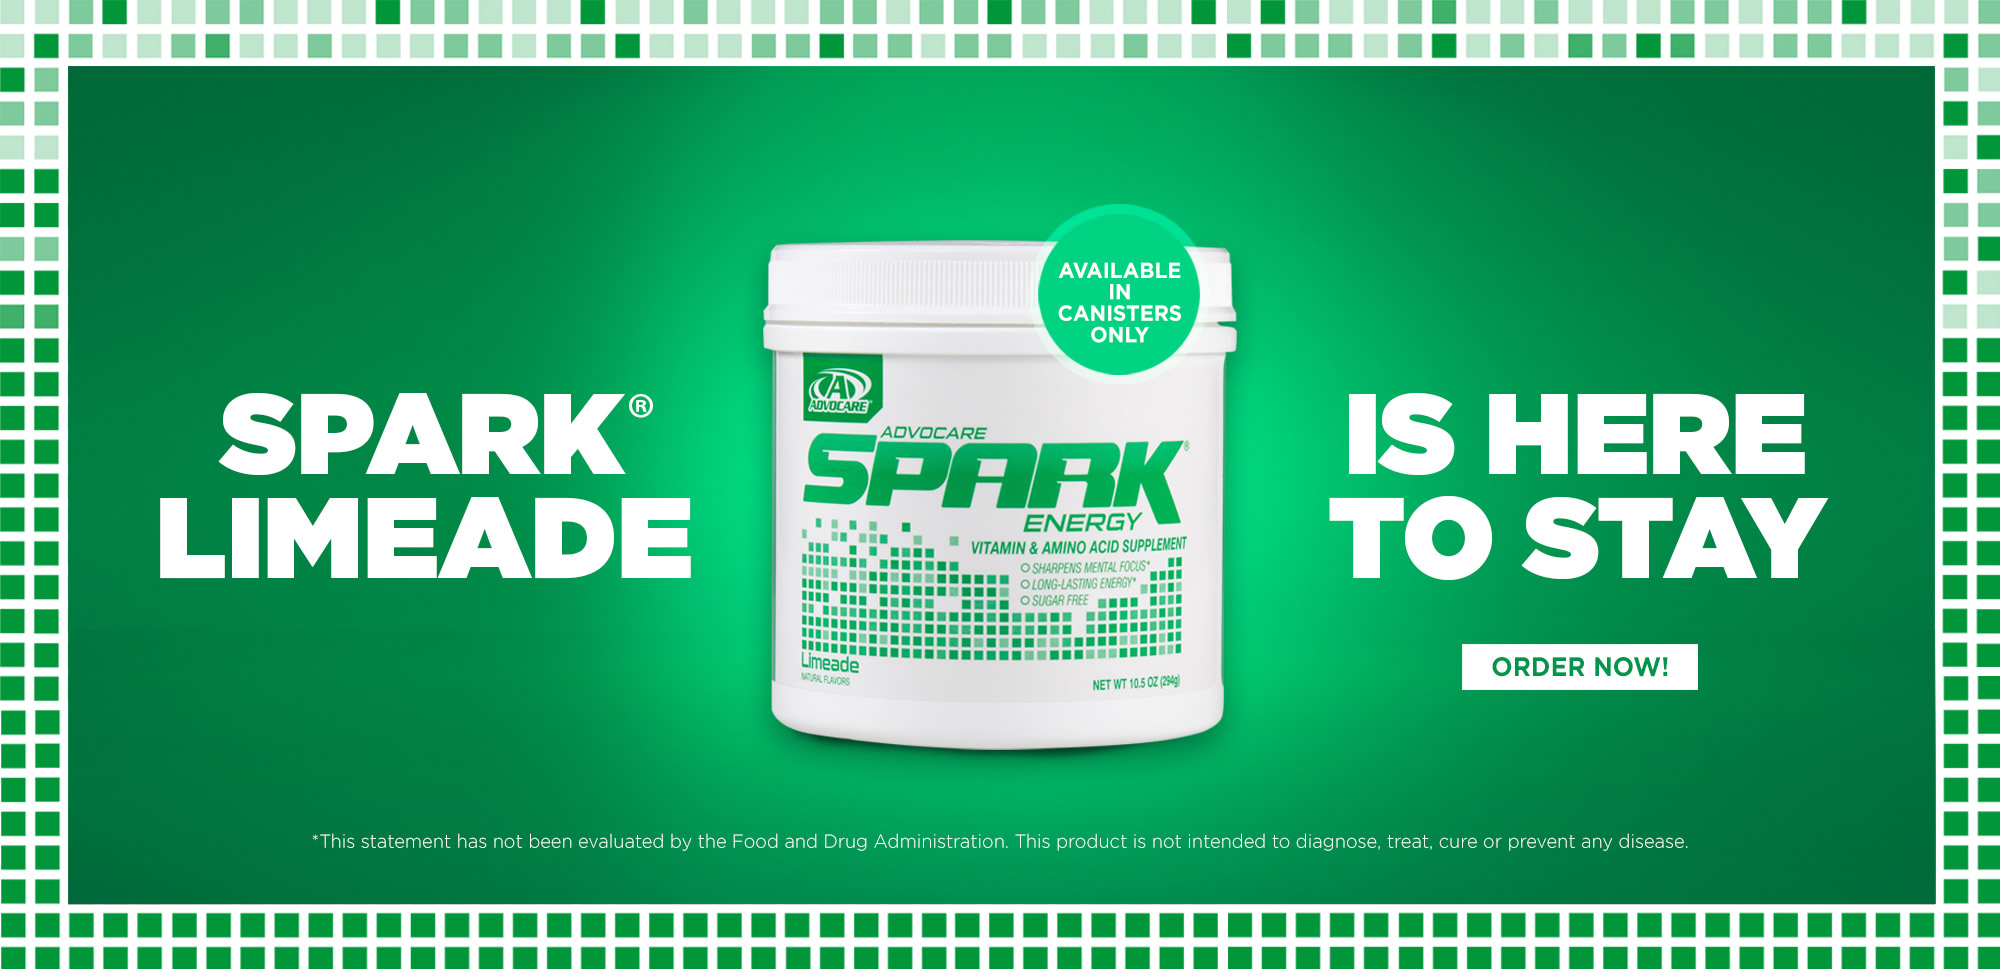 Spark Limeade is here to stay!